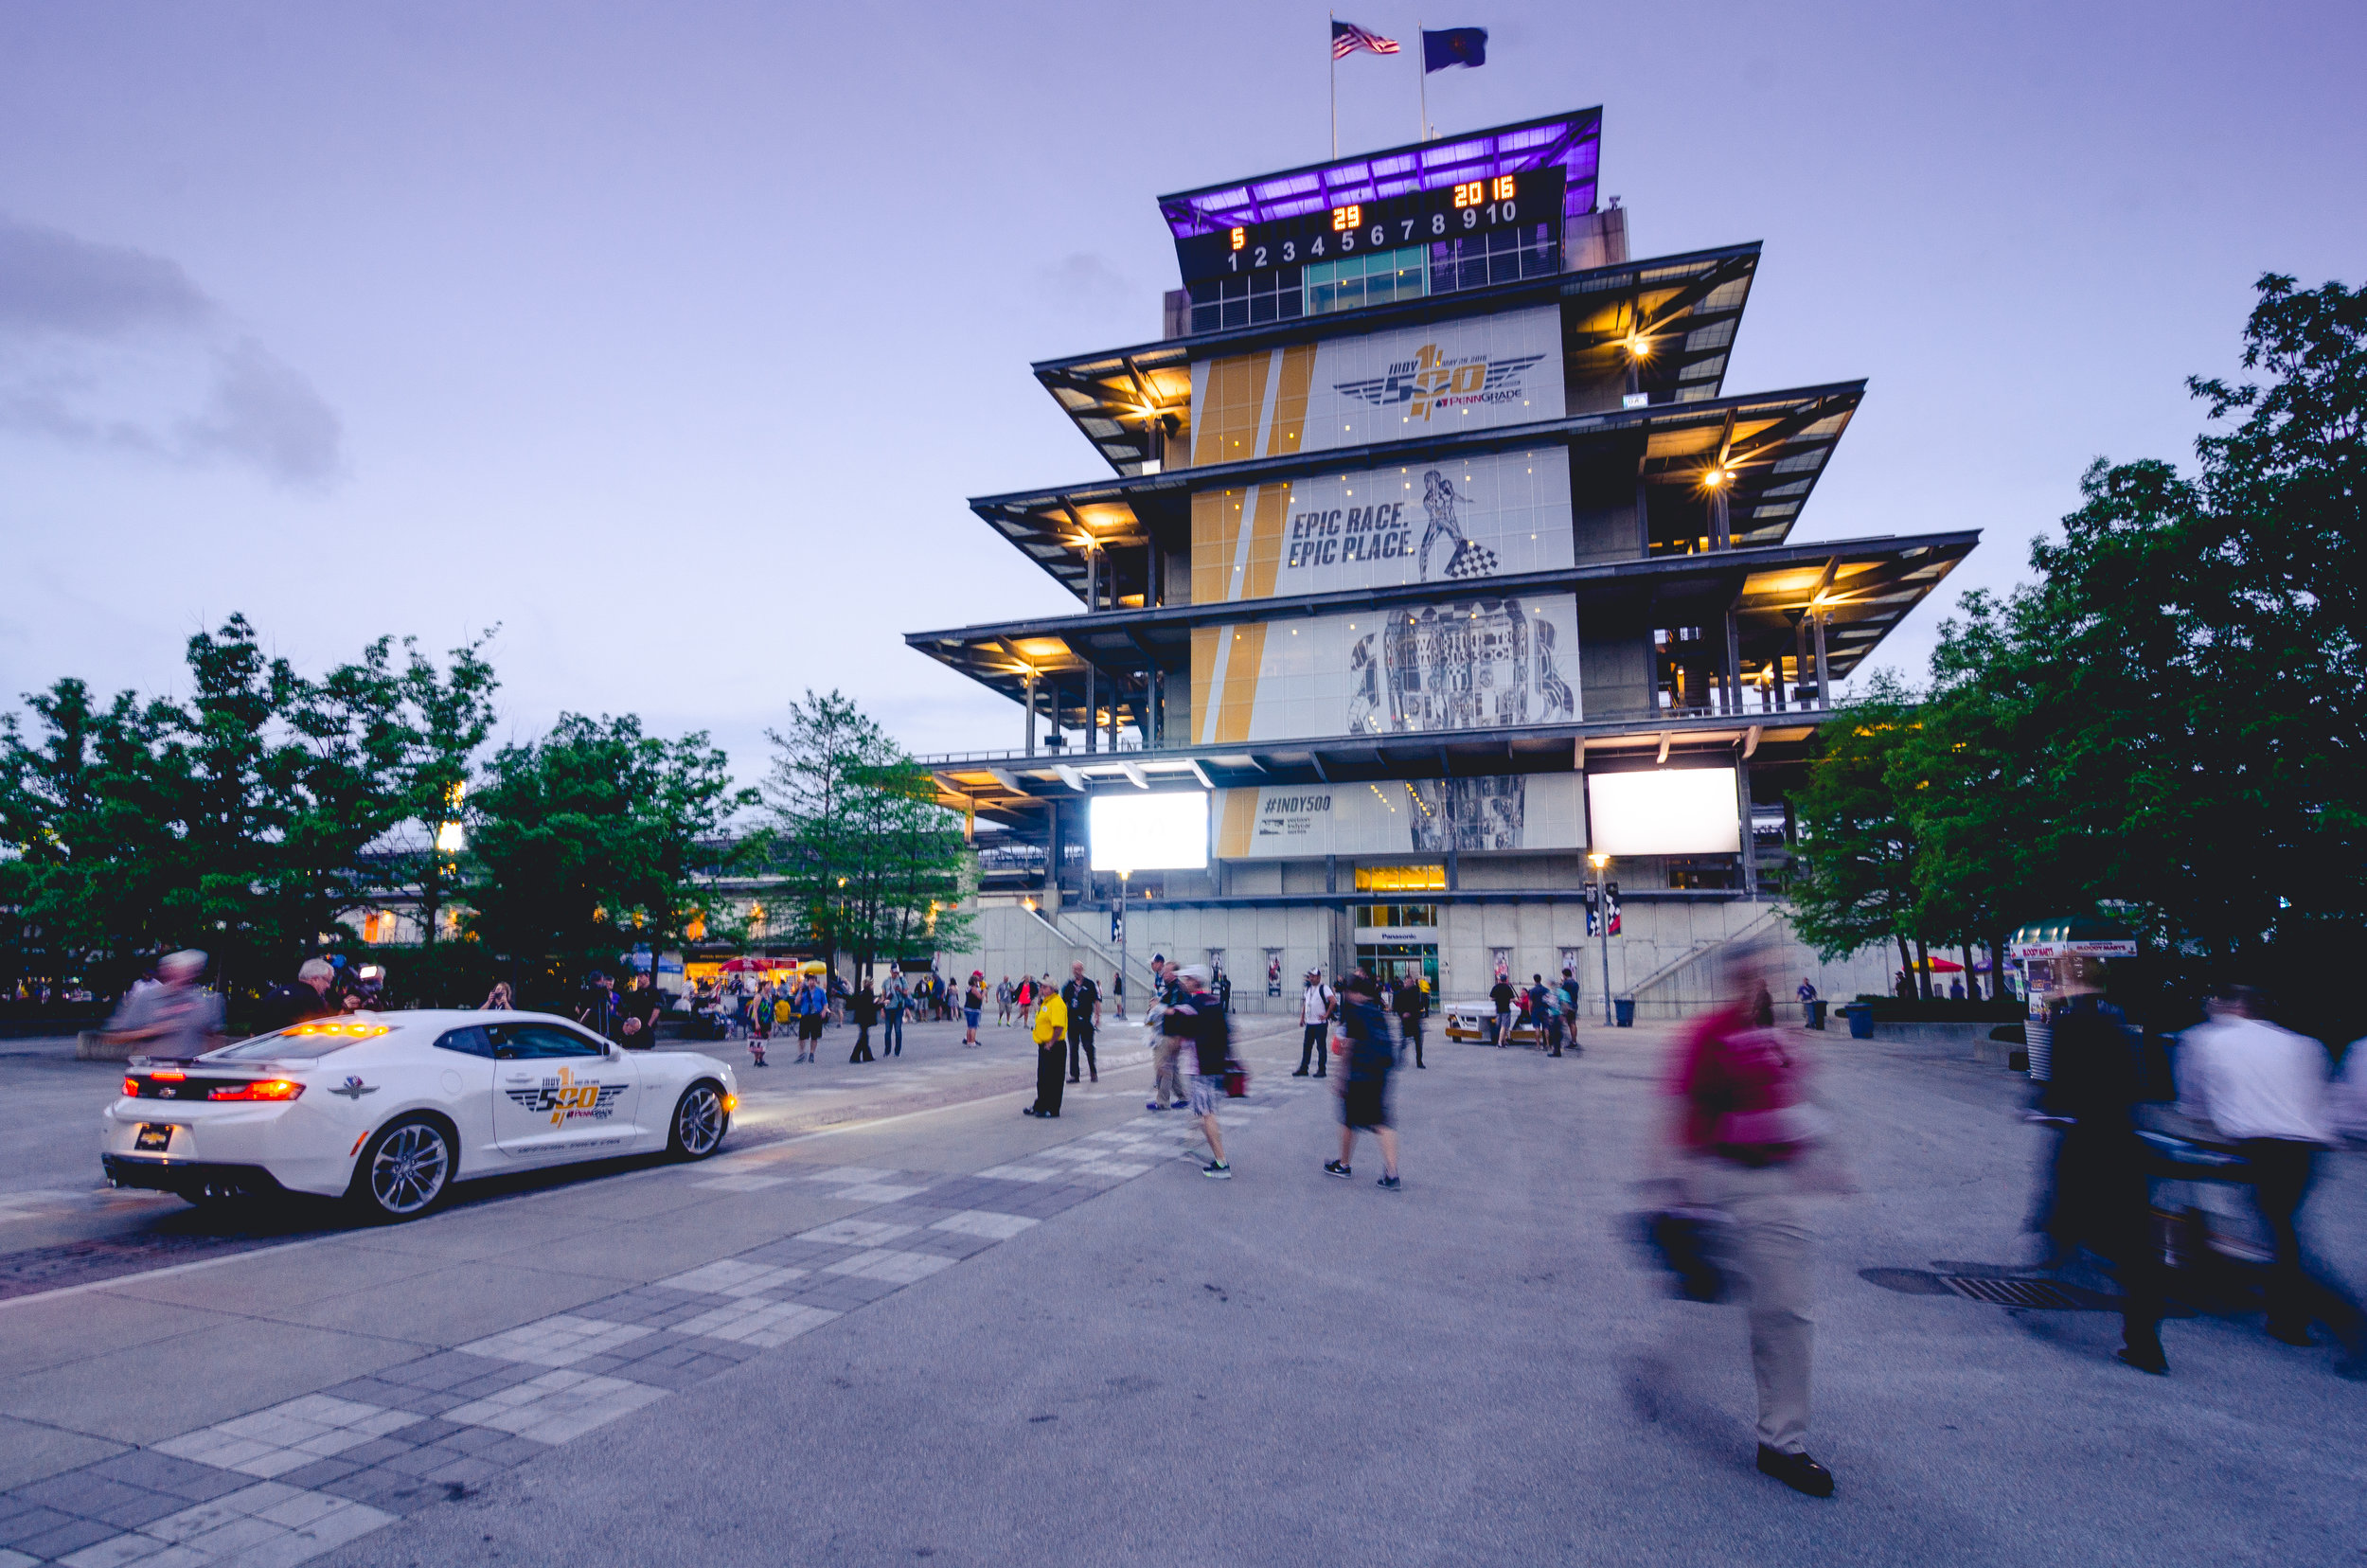 Indy500 Race Day (20 of 21).jpg